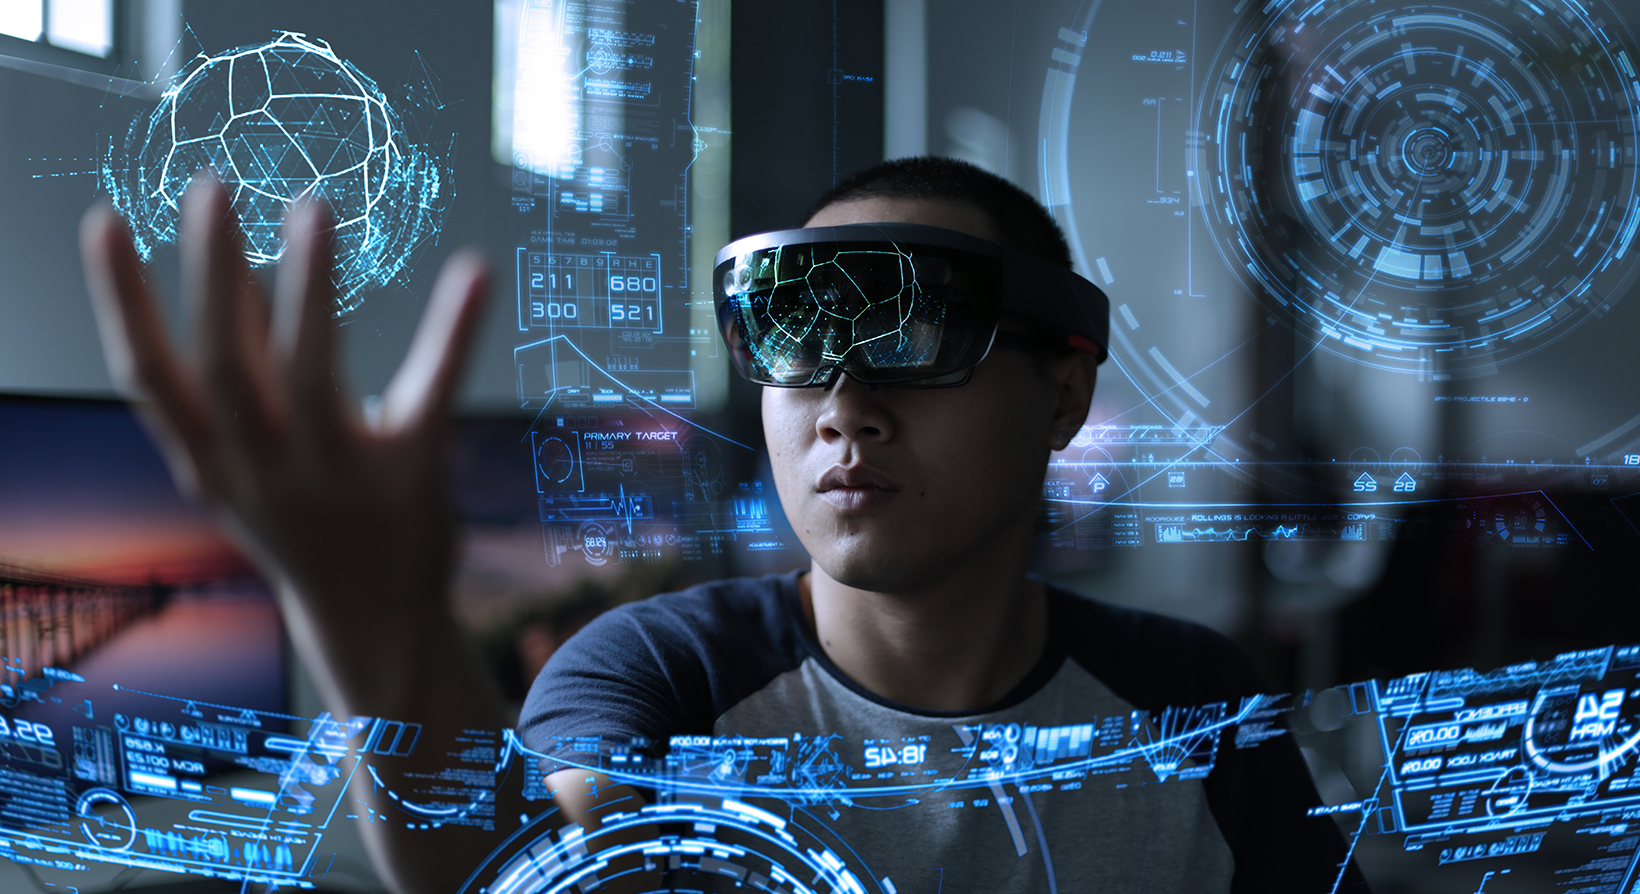 man wearing hololens and playing with a holographic object